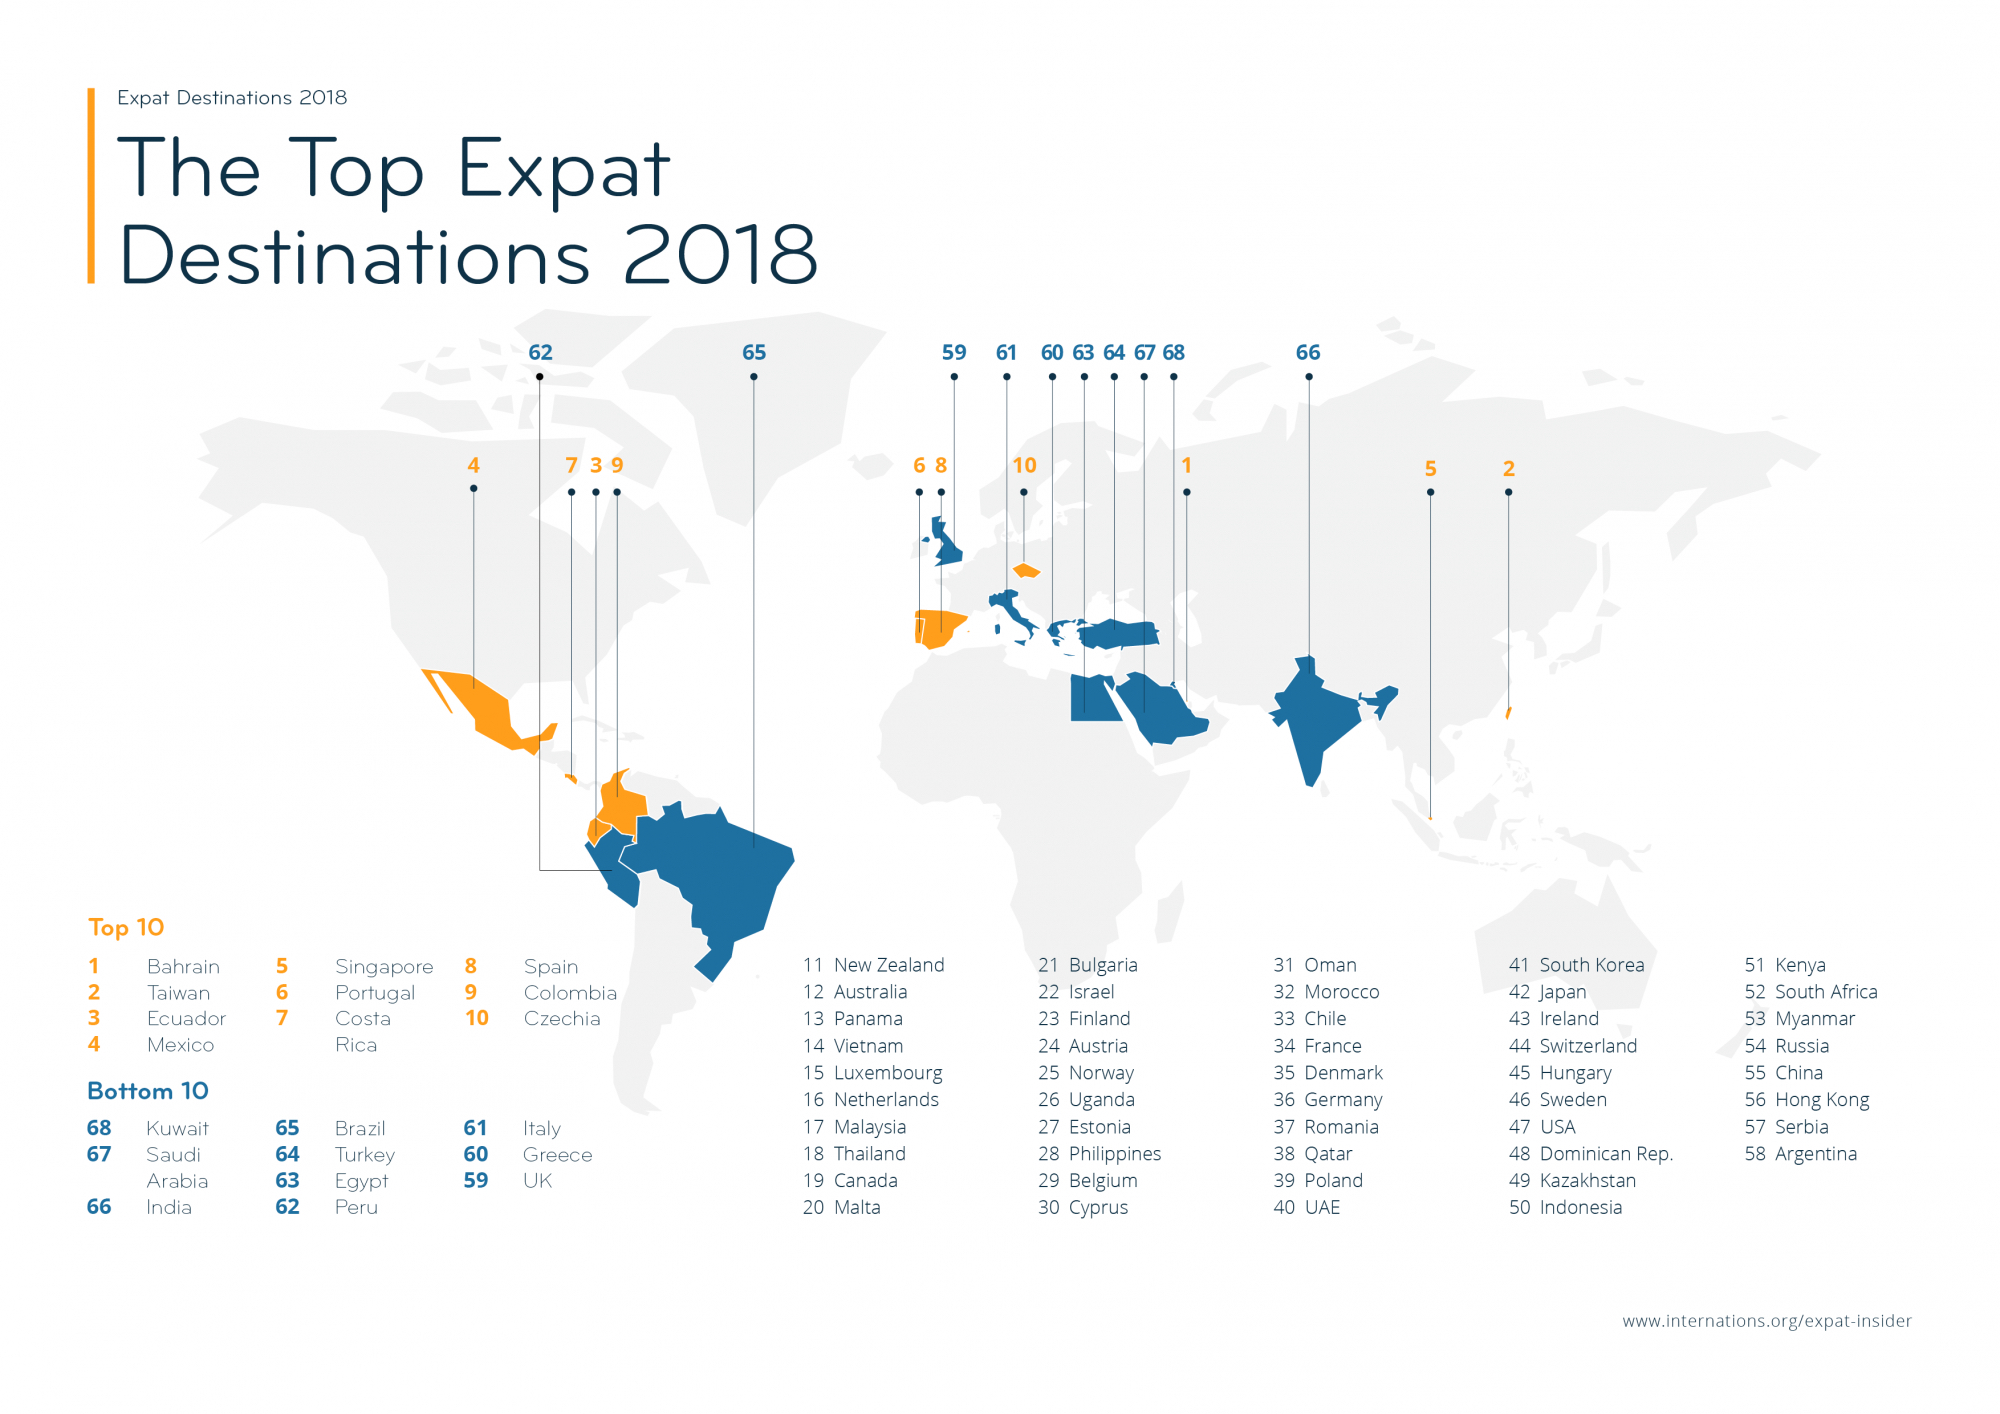 The Best (and worst) Countries for Expat Job Assignments